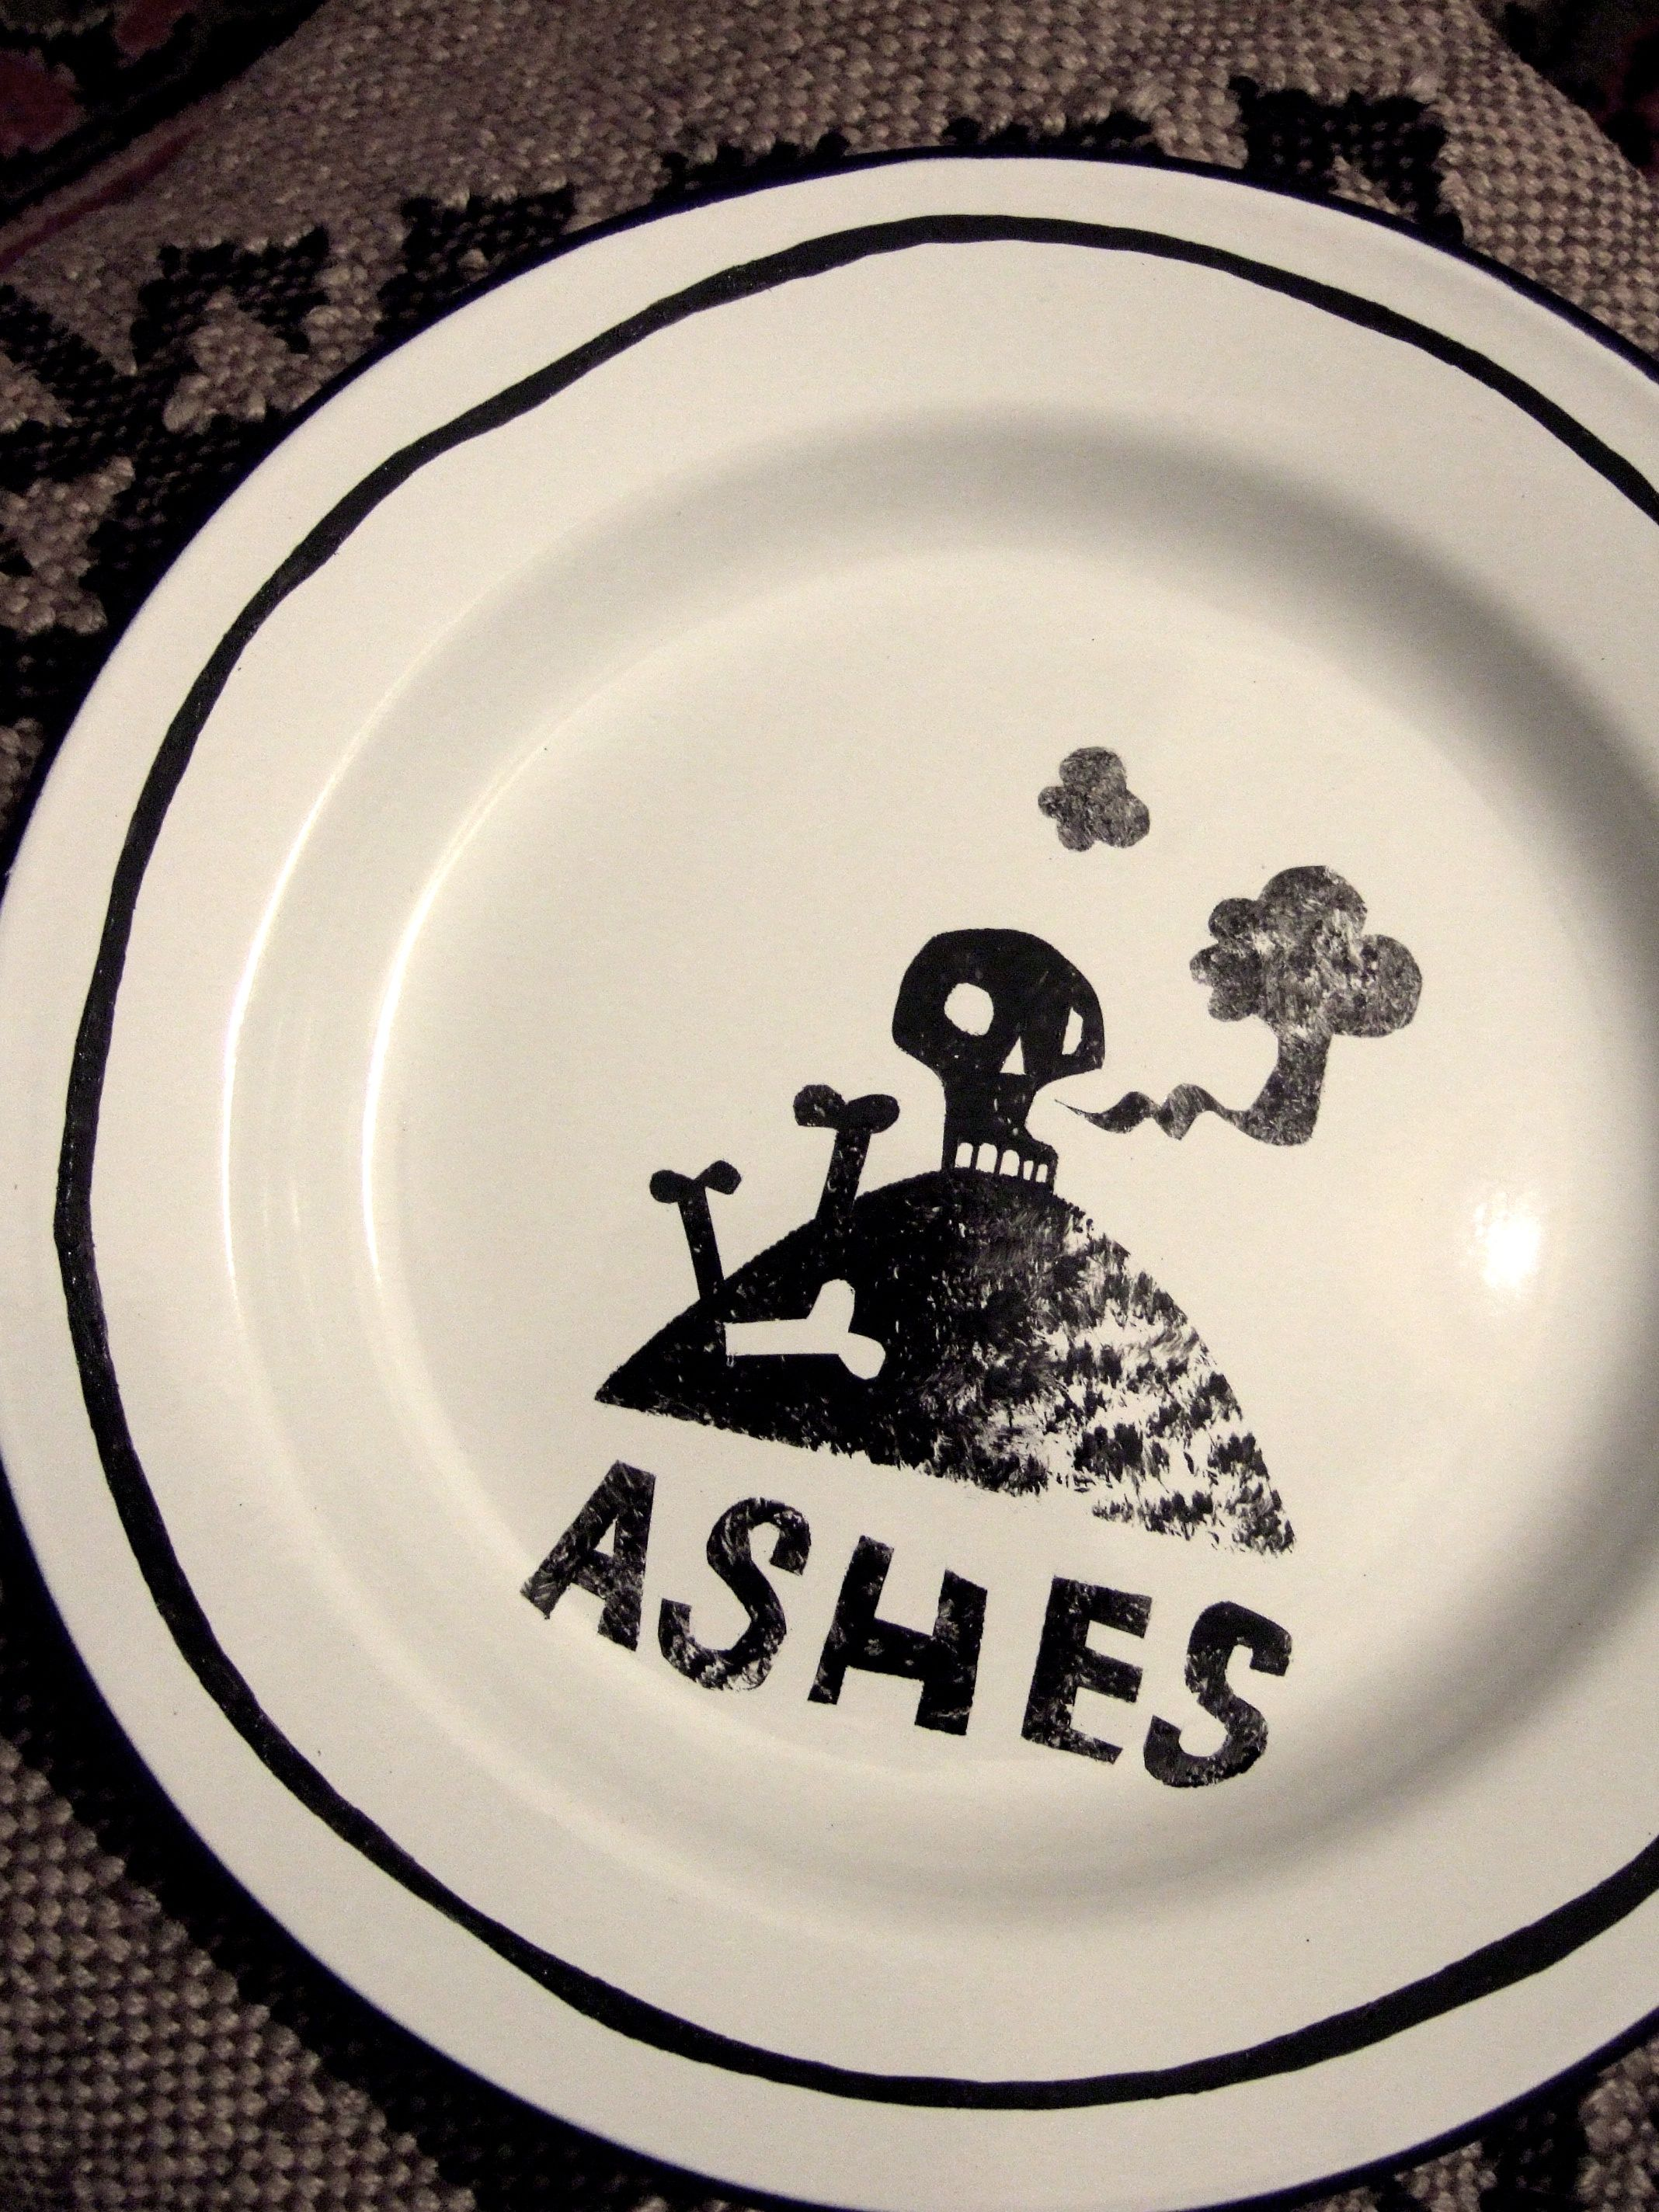 Enamelware plate decorated with ceramic ink. From the 'Hansel & Gretel' series by Clive Hicks Jenkins.